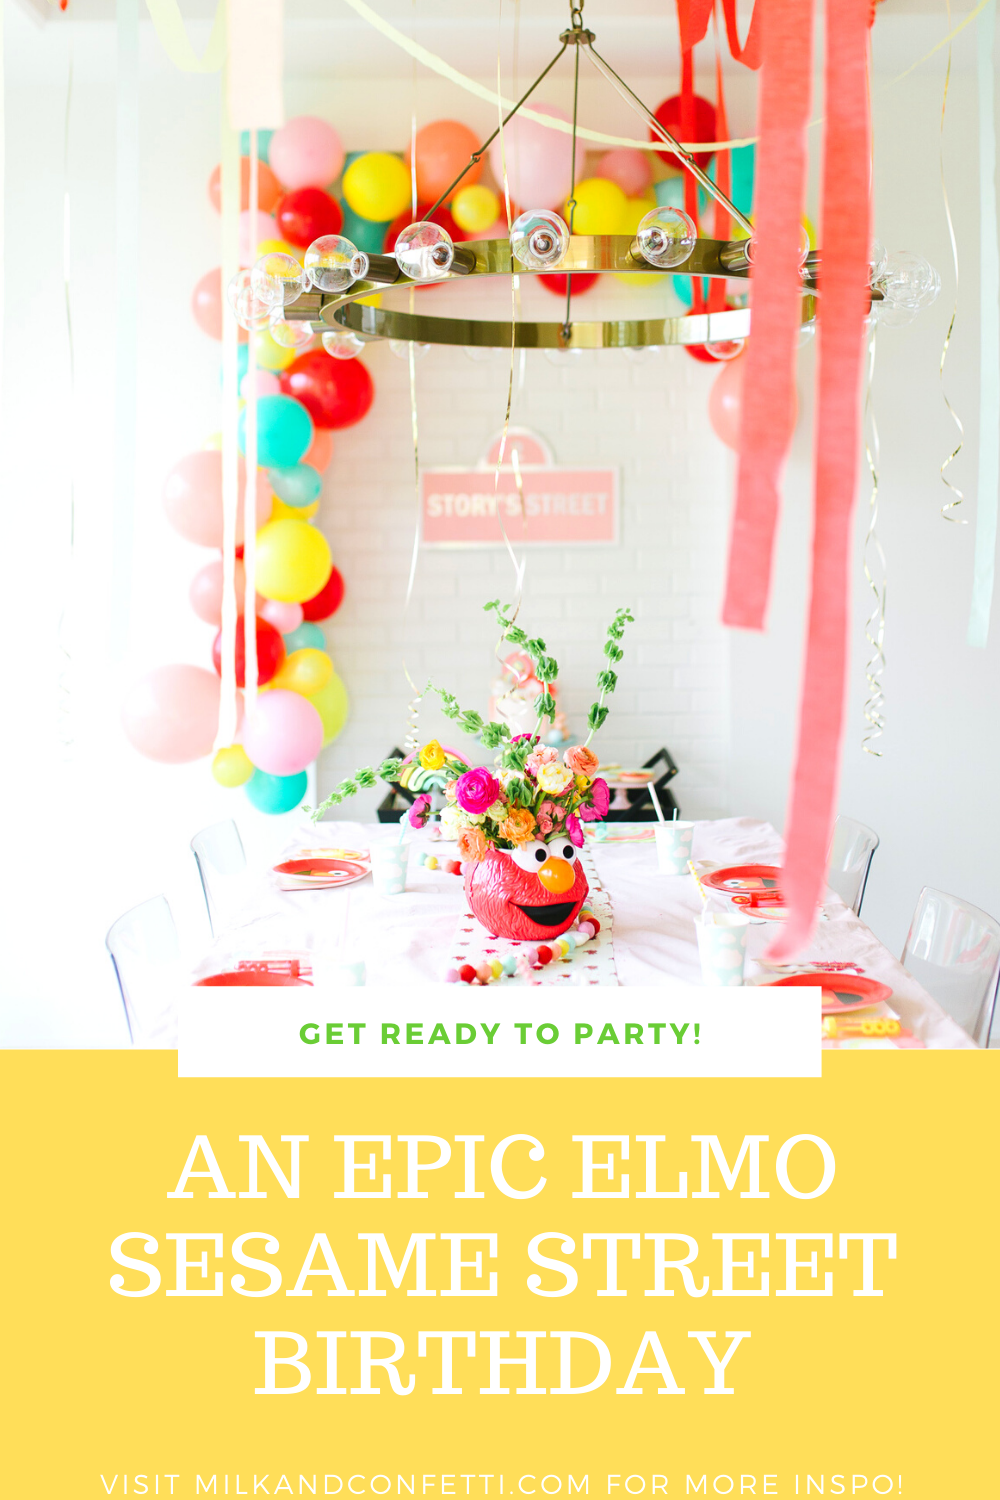 A Sesame Street Elmo Second birthday party with balloons, streamers cake and flowers!